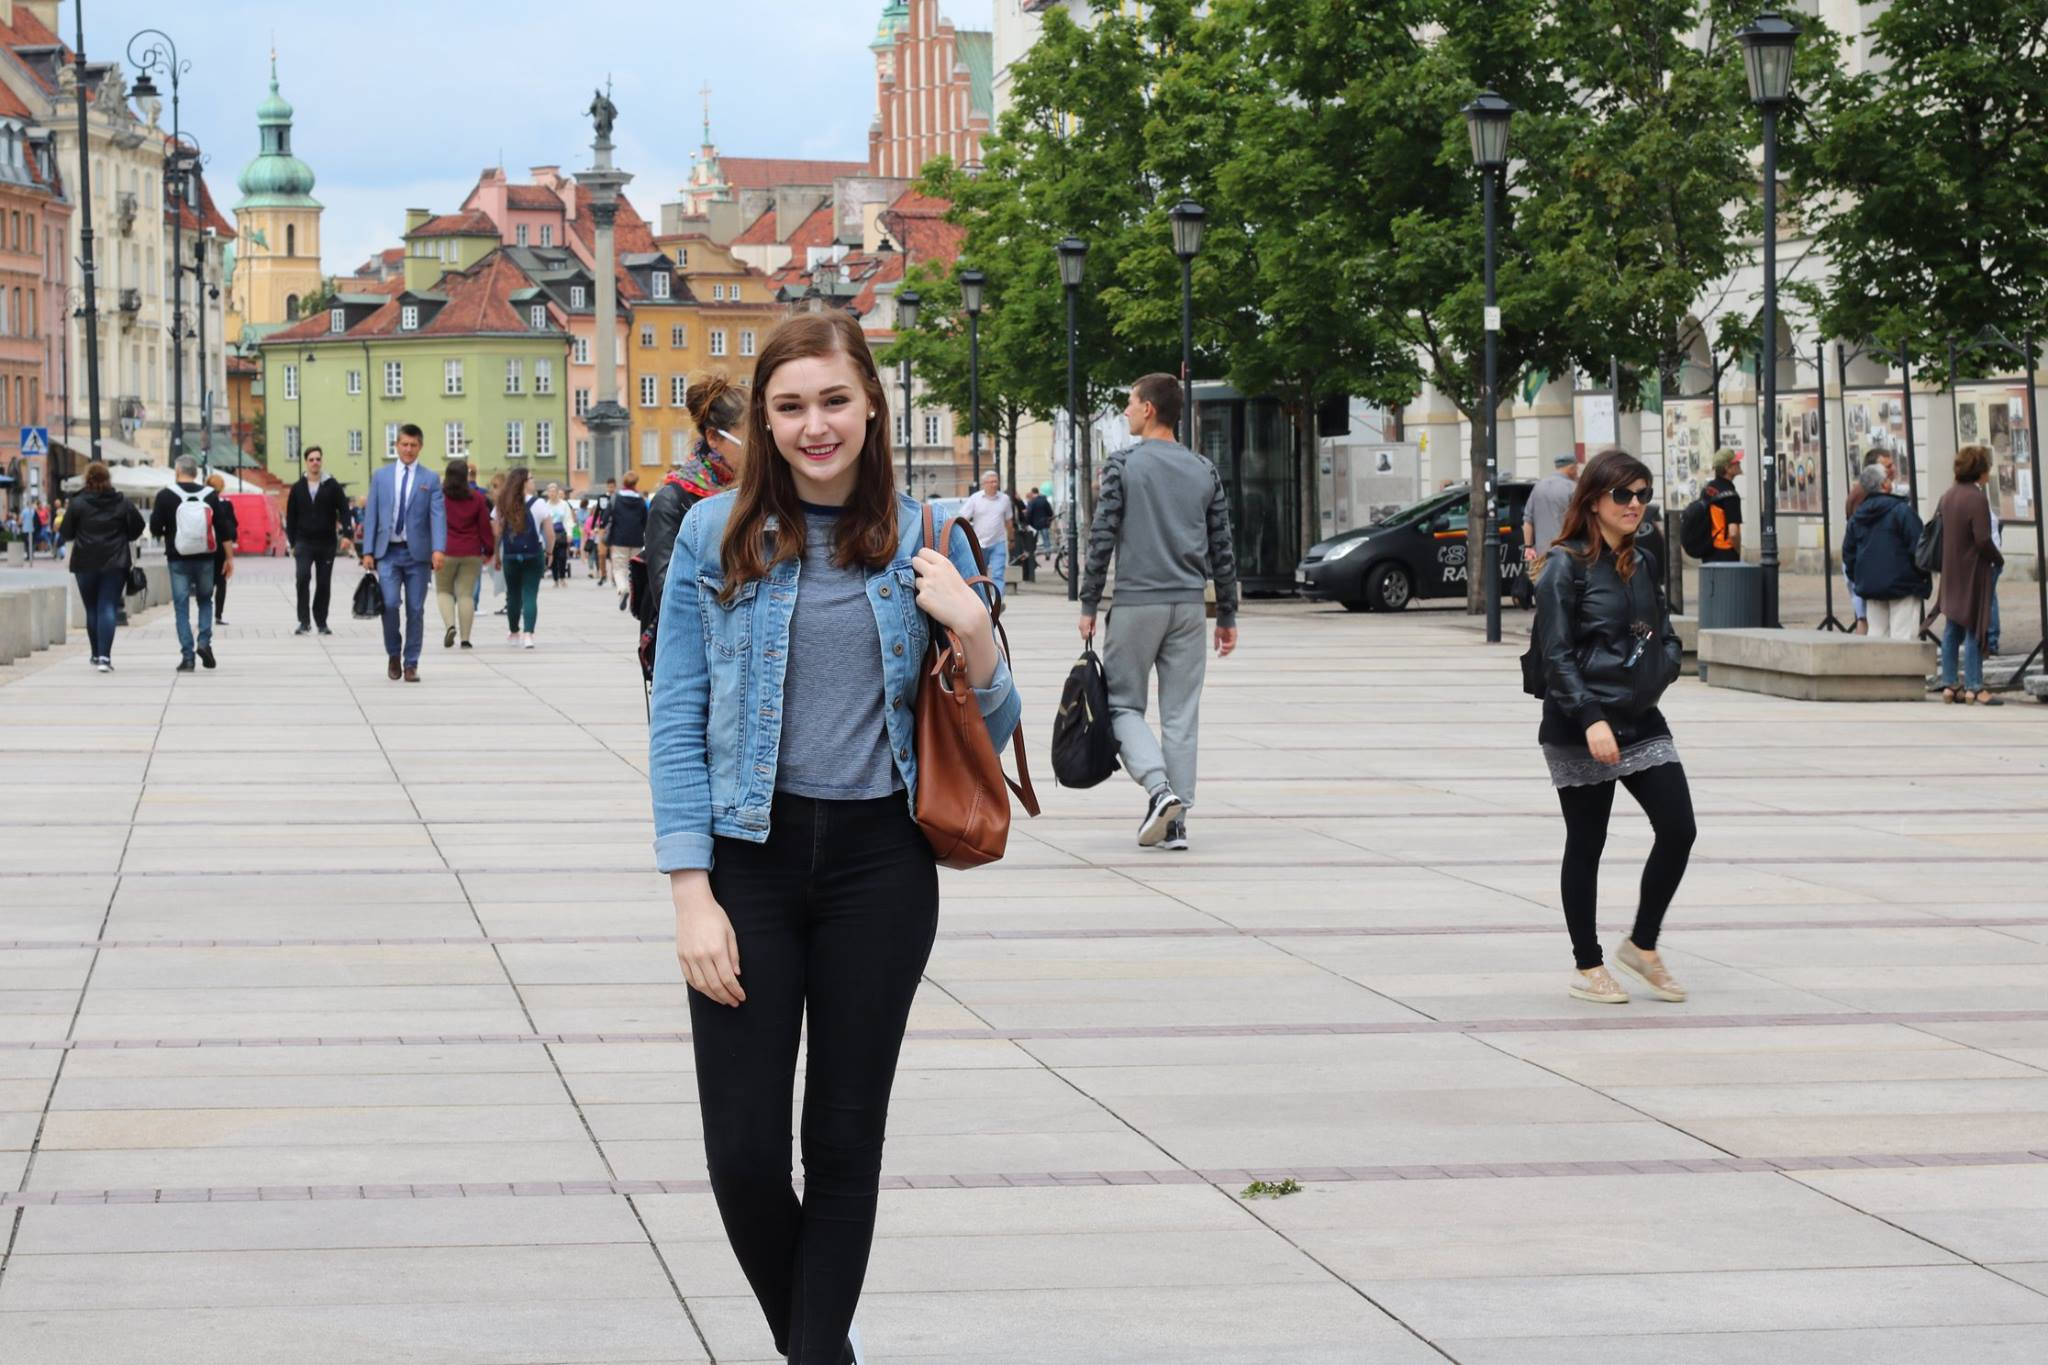 Travel Diary: I Went To Warsaw!